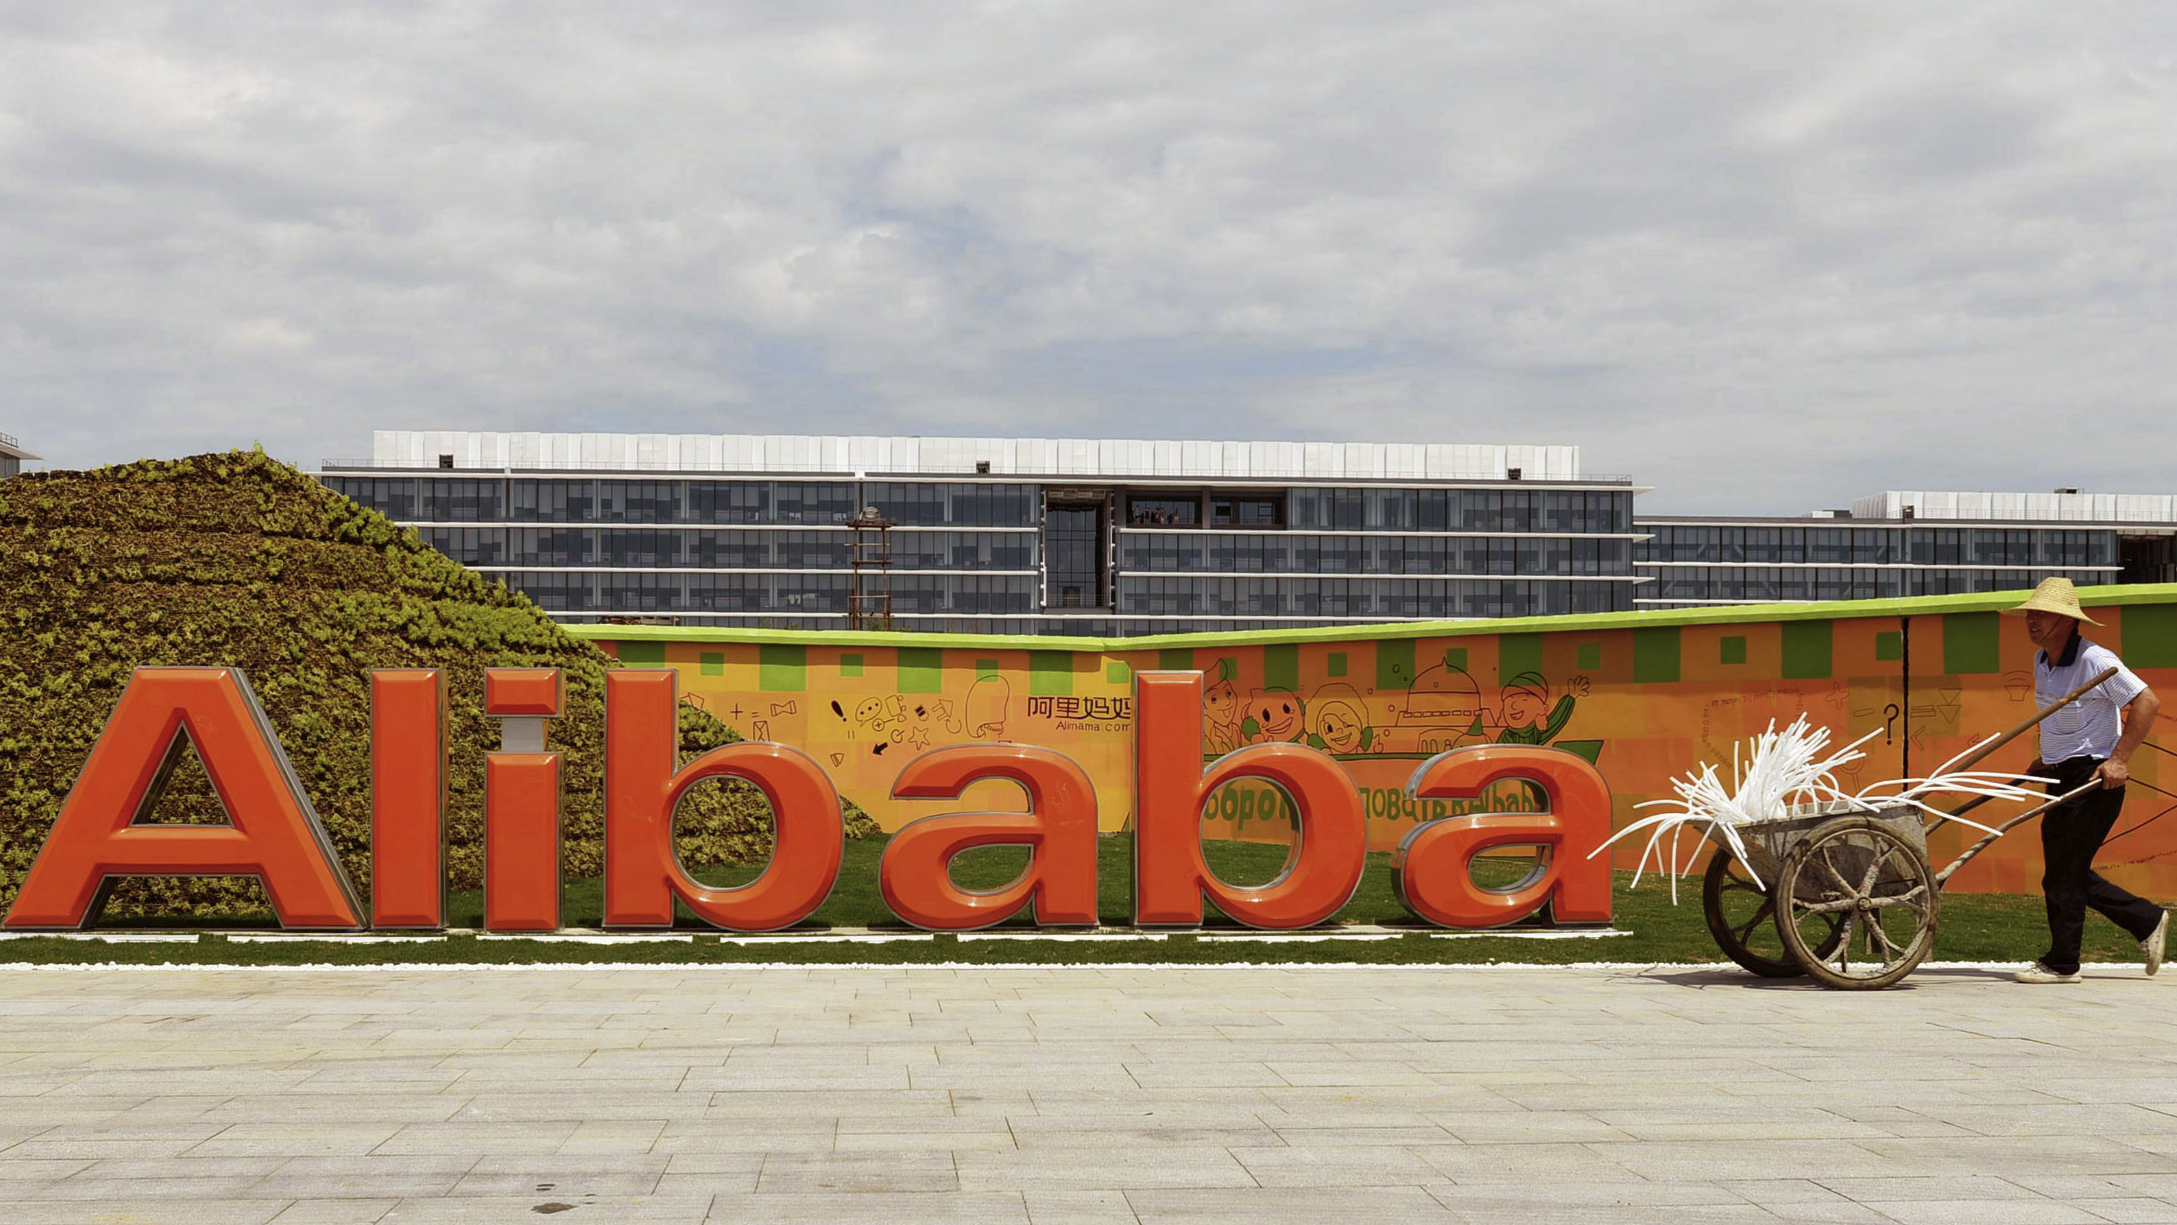 A worker walks past a logo of Alibaba Group at its headquarters on the outskirts of Hangzhou, Zhejiang province, August 24, 2013. China's e-commerce market is expected to leapfrog that of the United States this year to become the world's largest by total customer spending, management consultancy firm Bain & Company says, and could account for half of all Chinese retail spending within a decade. Picture taken August 24, 2013. REUTERS/China Daily